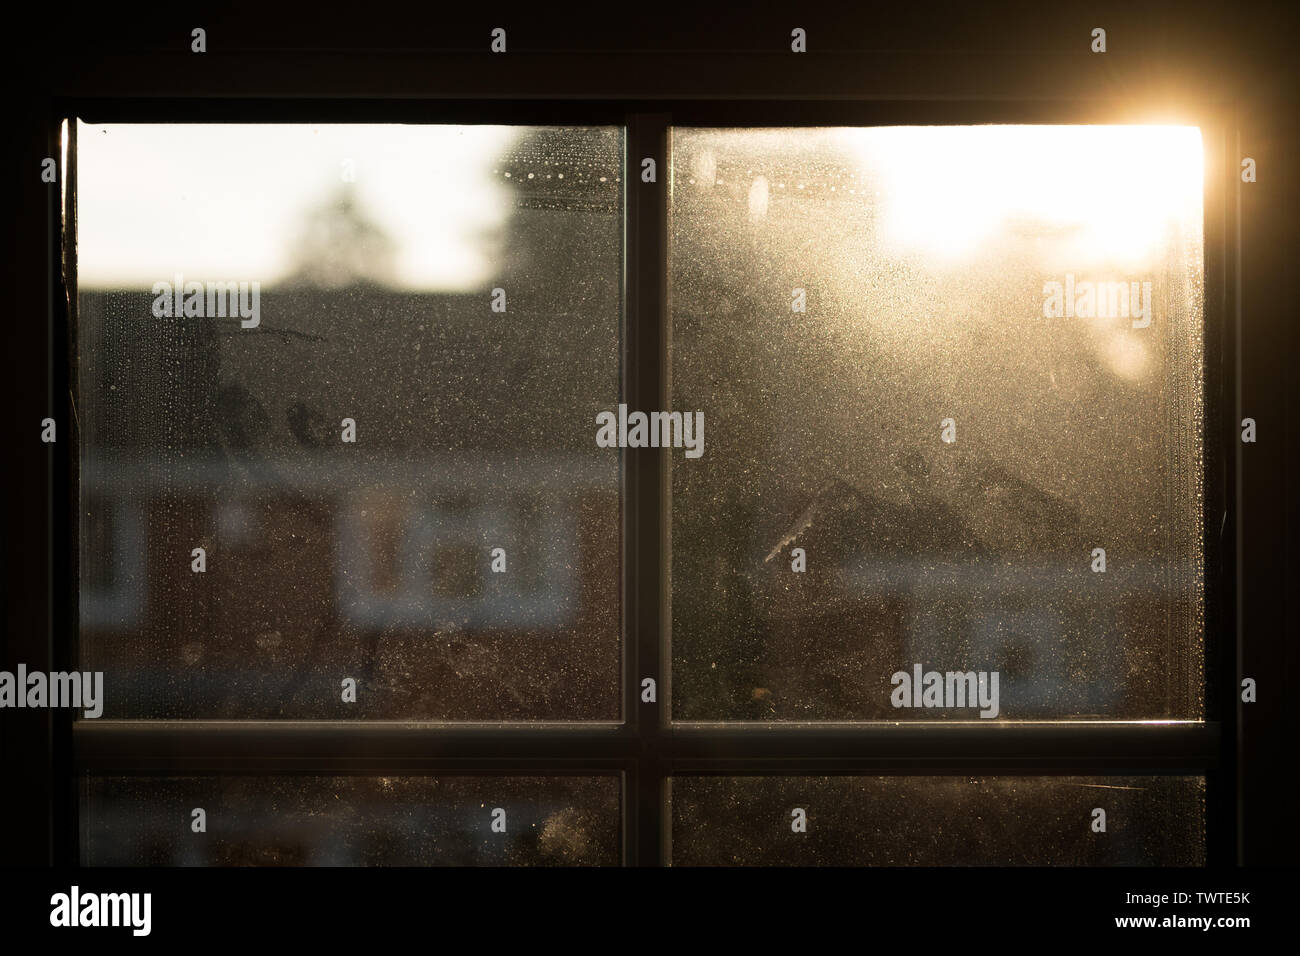 Sun rising over rooftop, seen through house window misted by dust and condensation; landscape format. - Stock Image